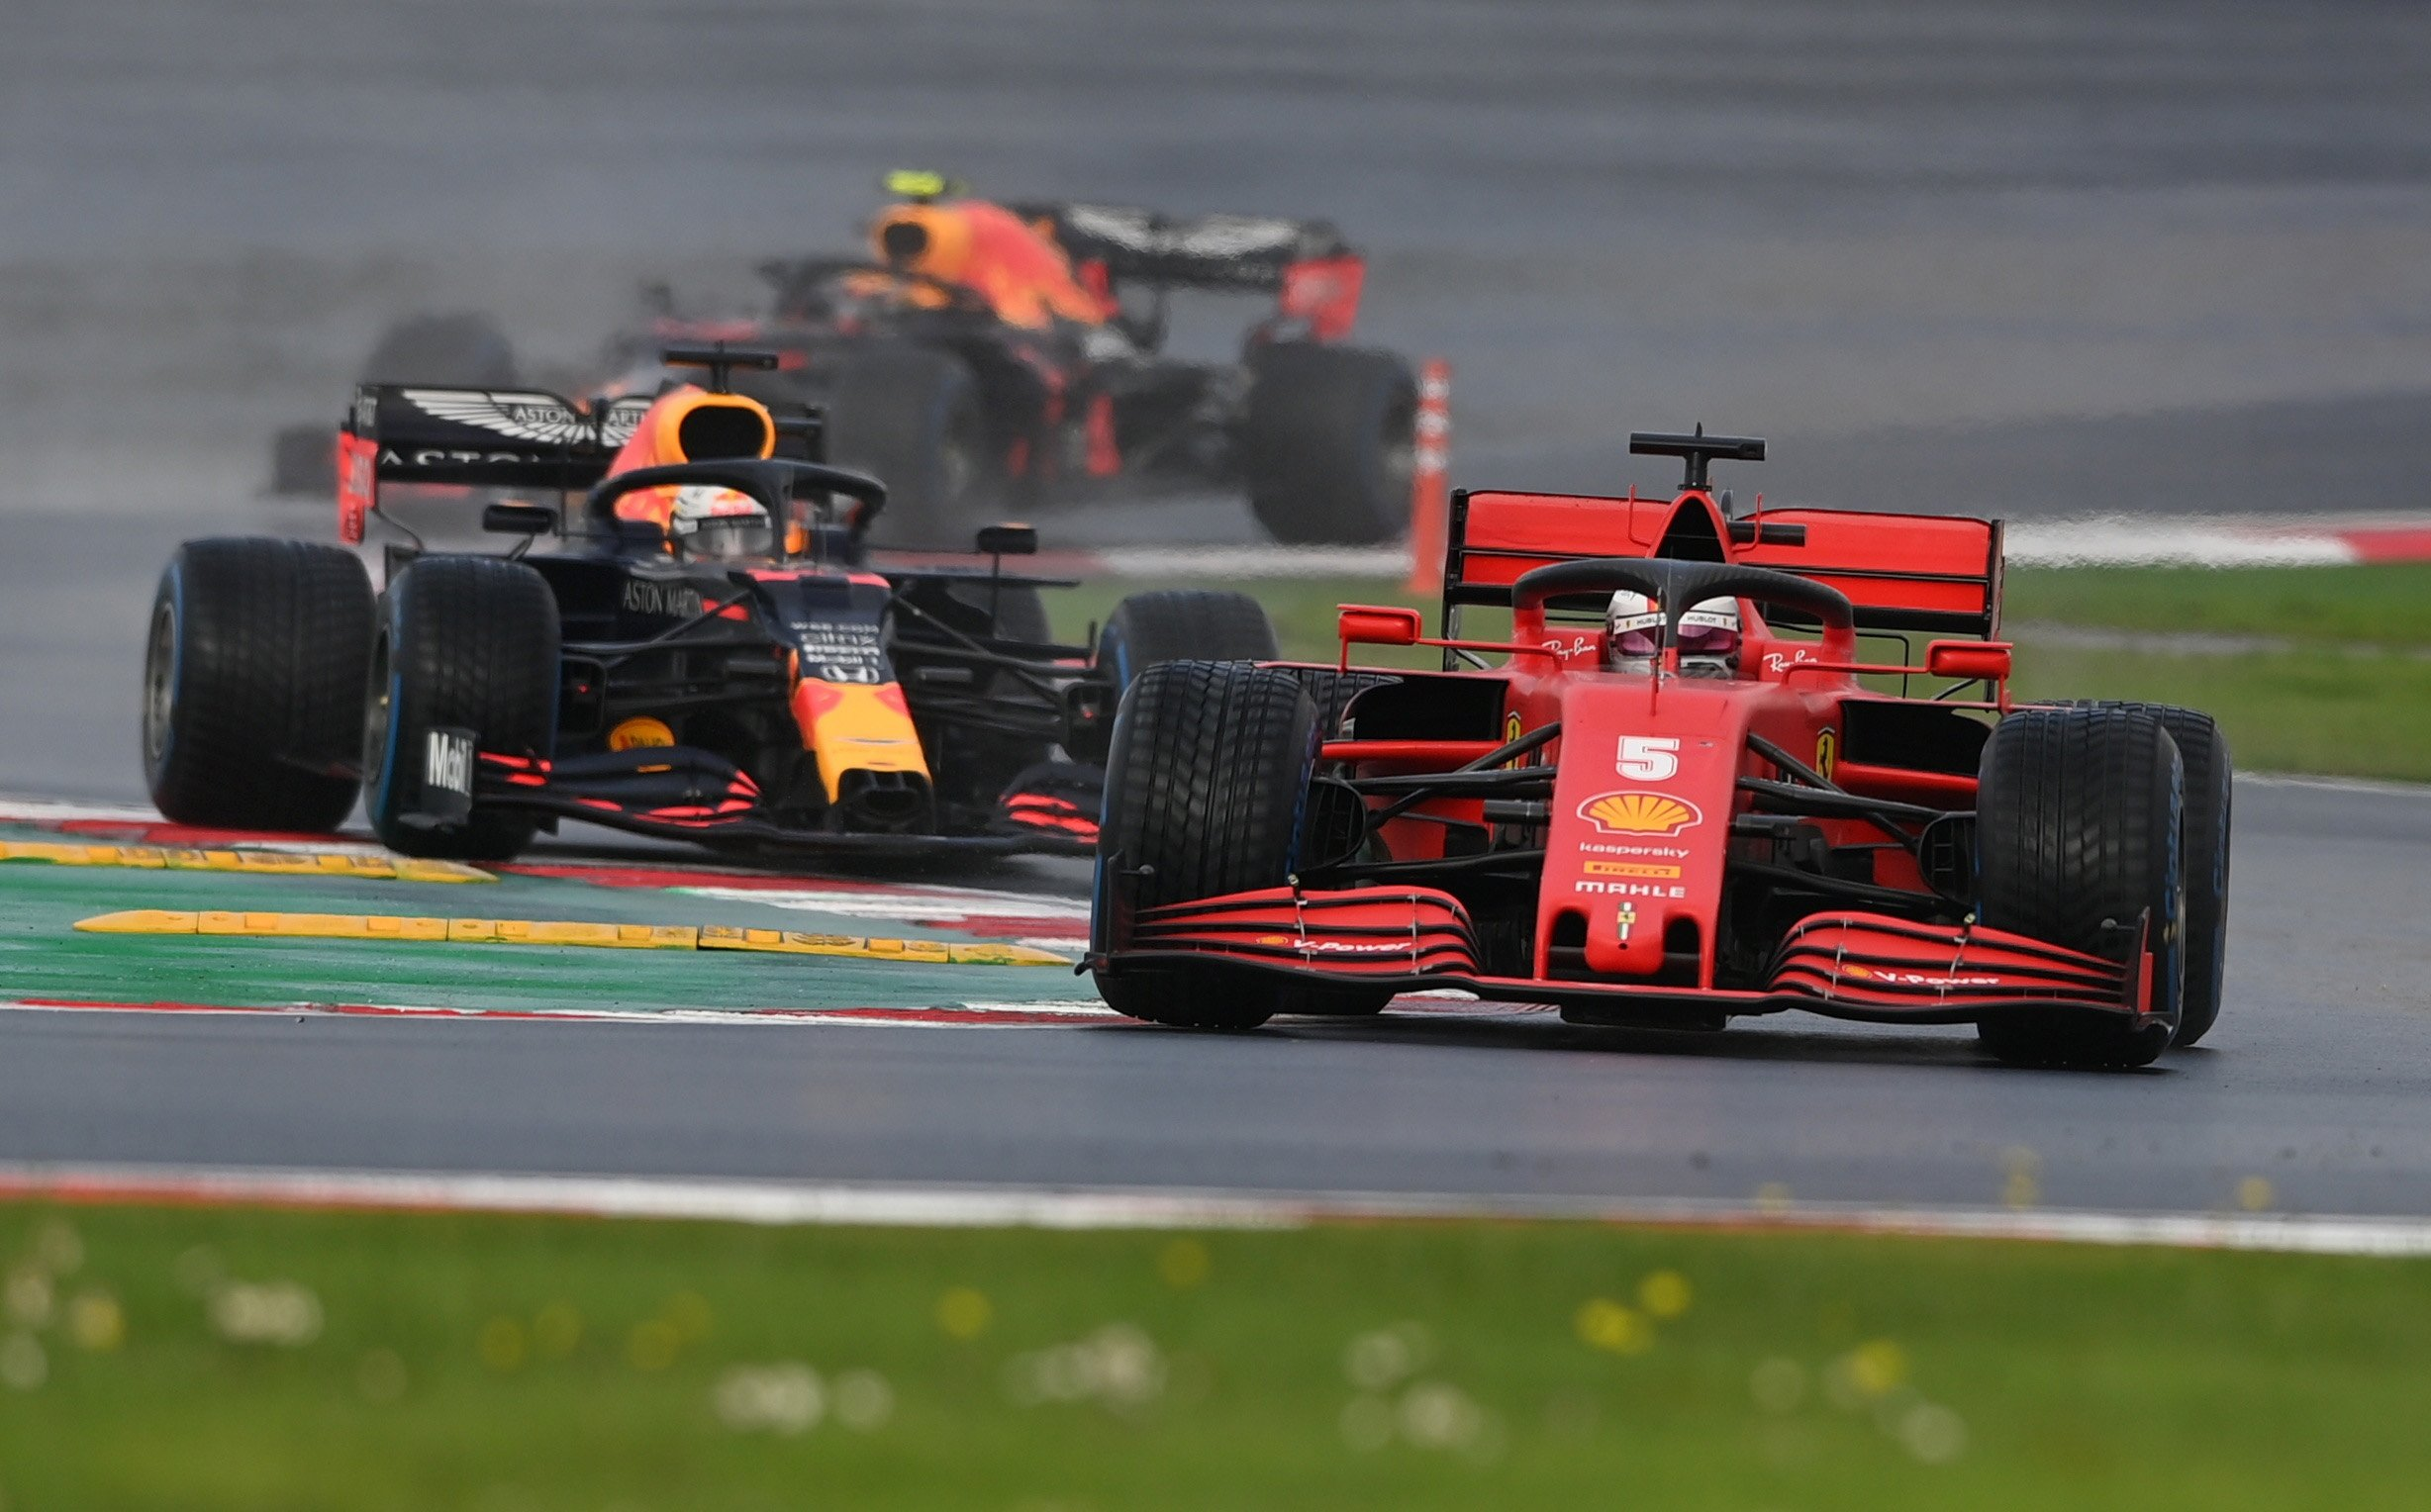 Ferrari's Sebastian Vettel, front, and Red Bull's Max Verstappen in action during the Formula One Turkish Grand Prix in Istanbul, Turkey, Nov. 15, 2020. (Reuters Photo)